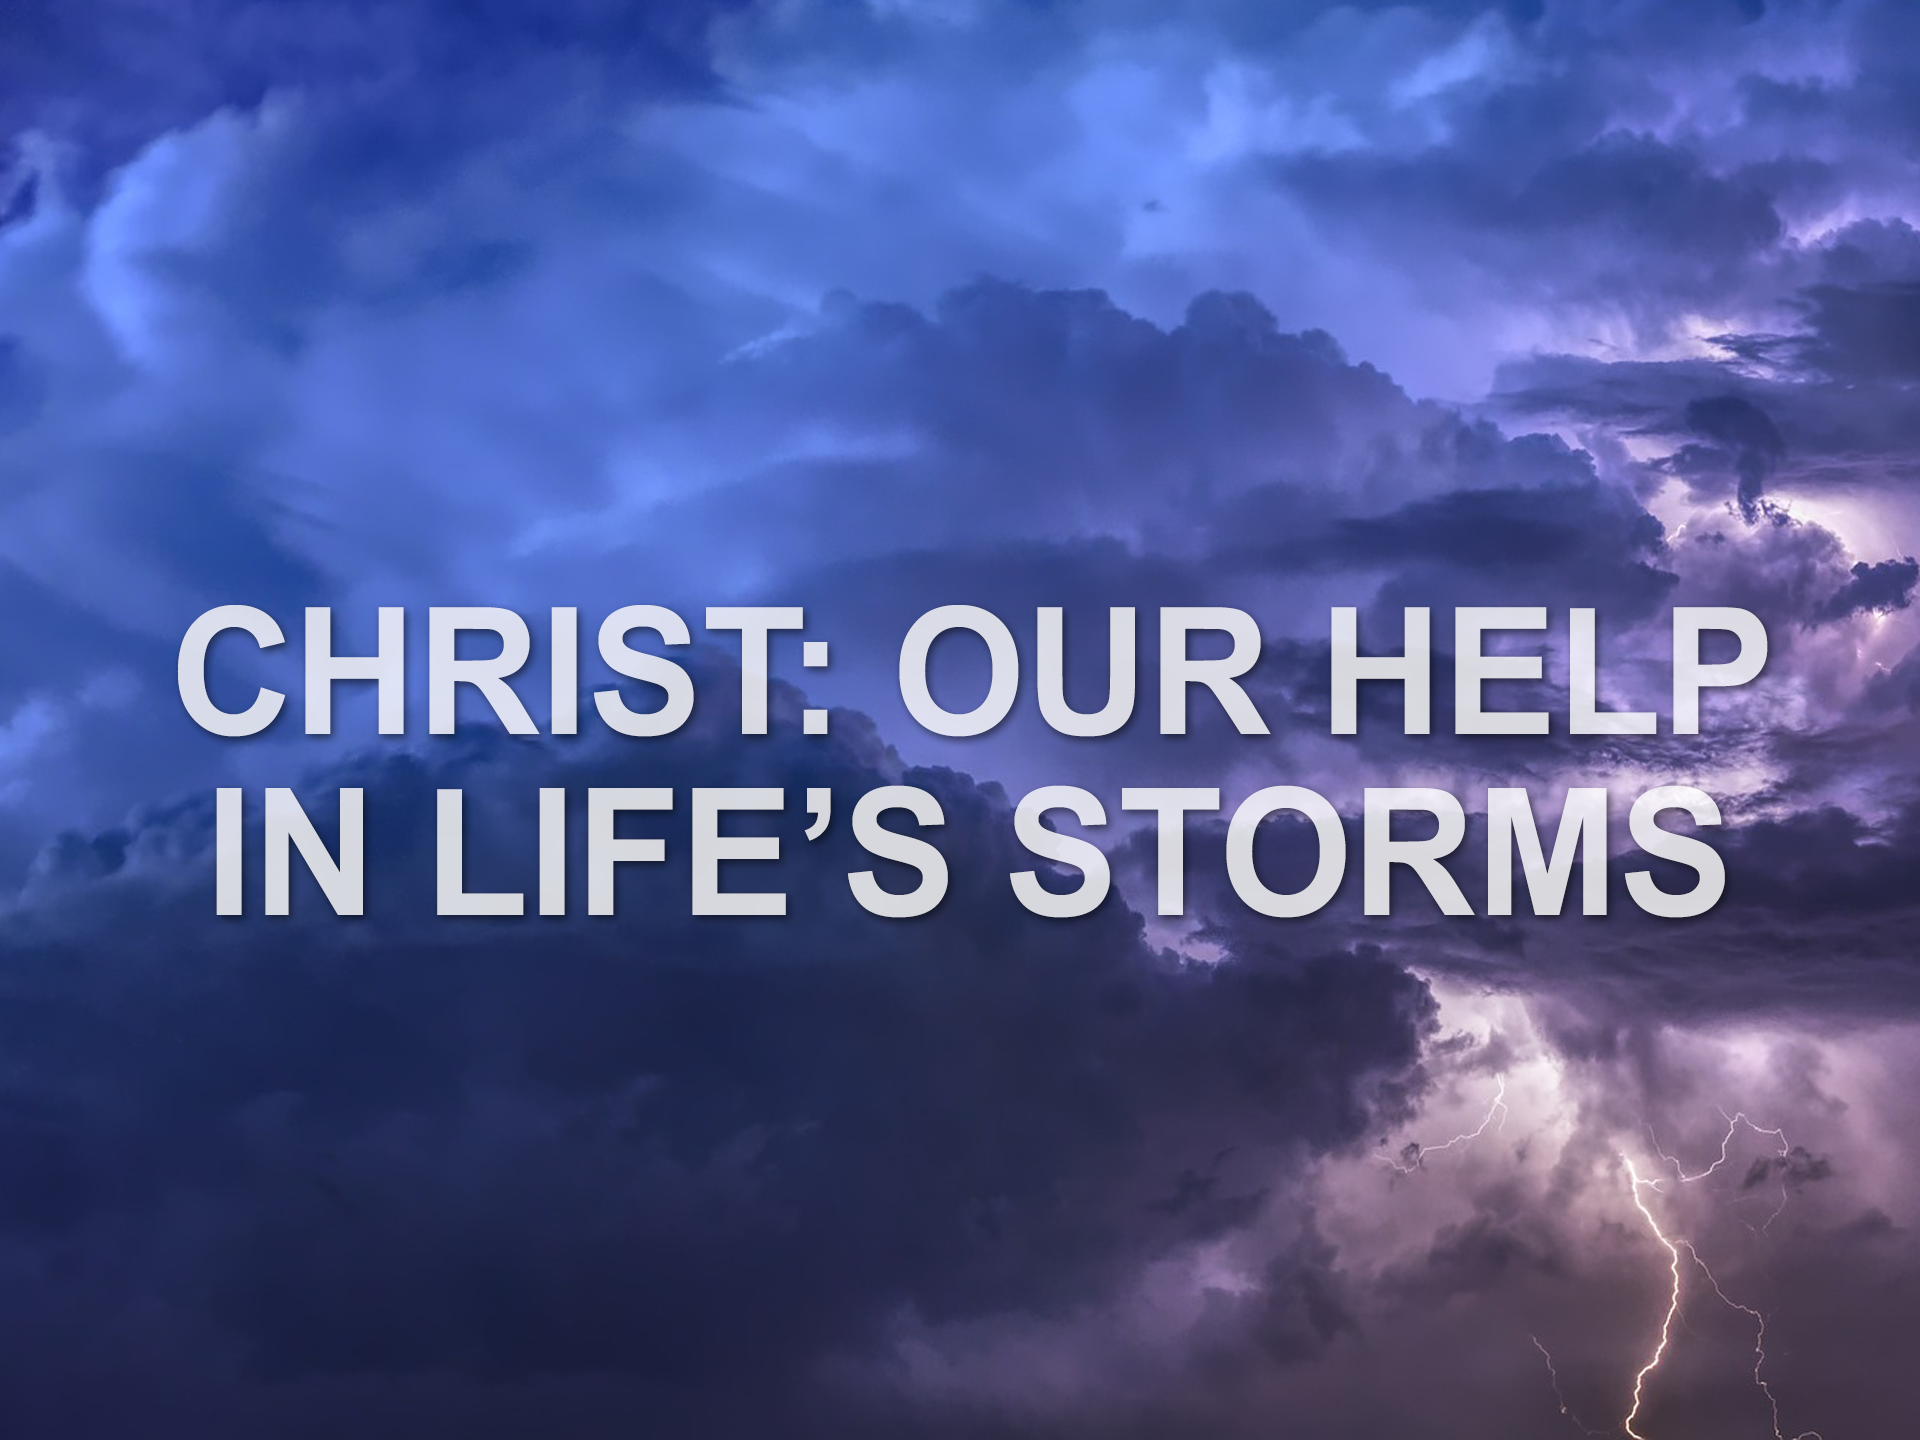 051919 christ our help in lifes storms.png